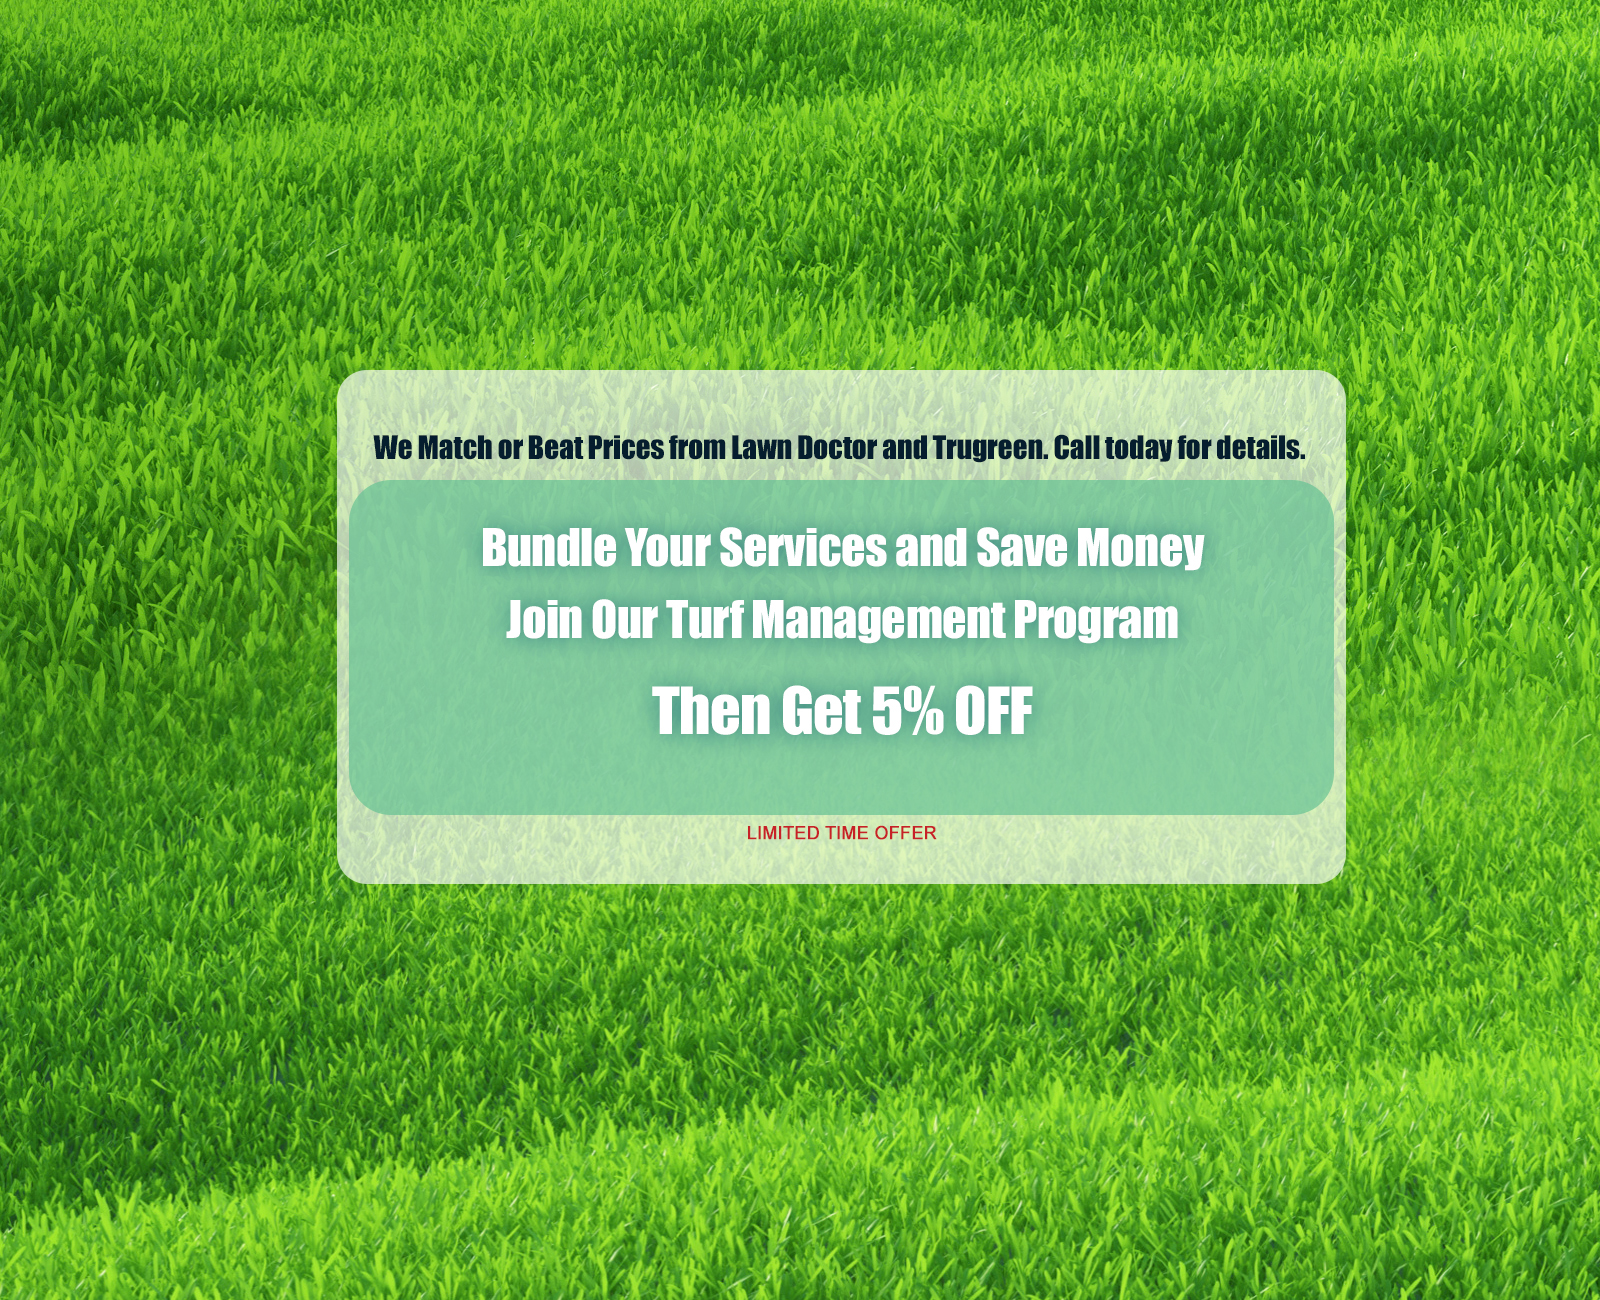 Bundle Your Services and Save Money. Join Our Turf Management Program. Then get 5% OFF.